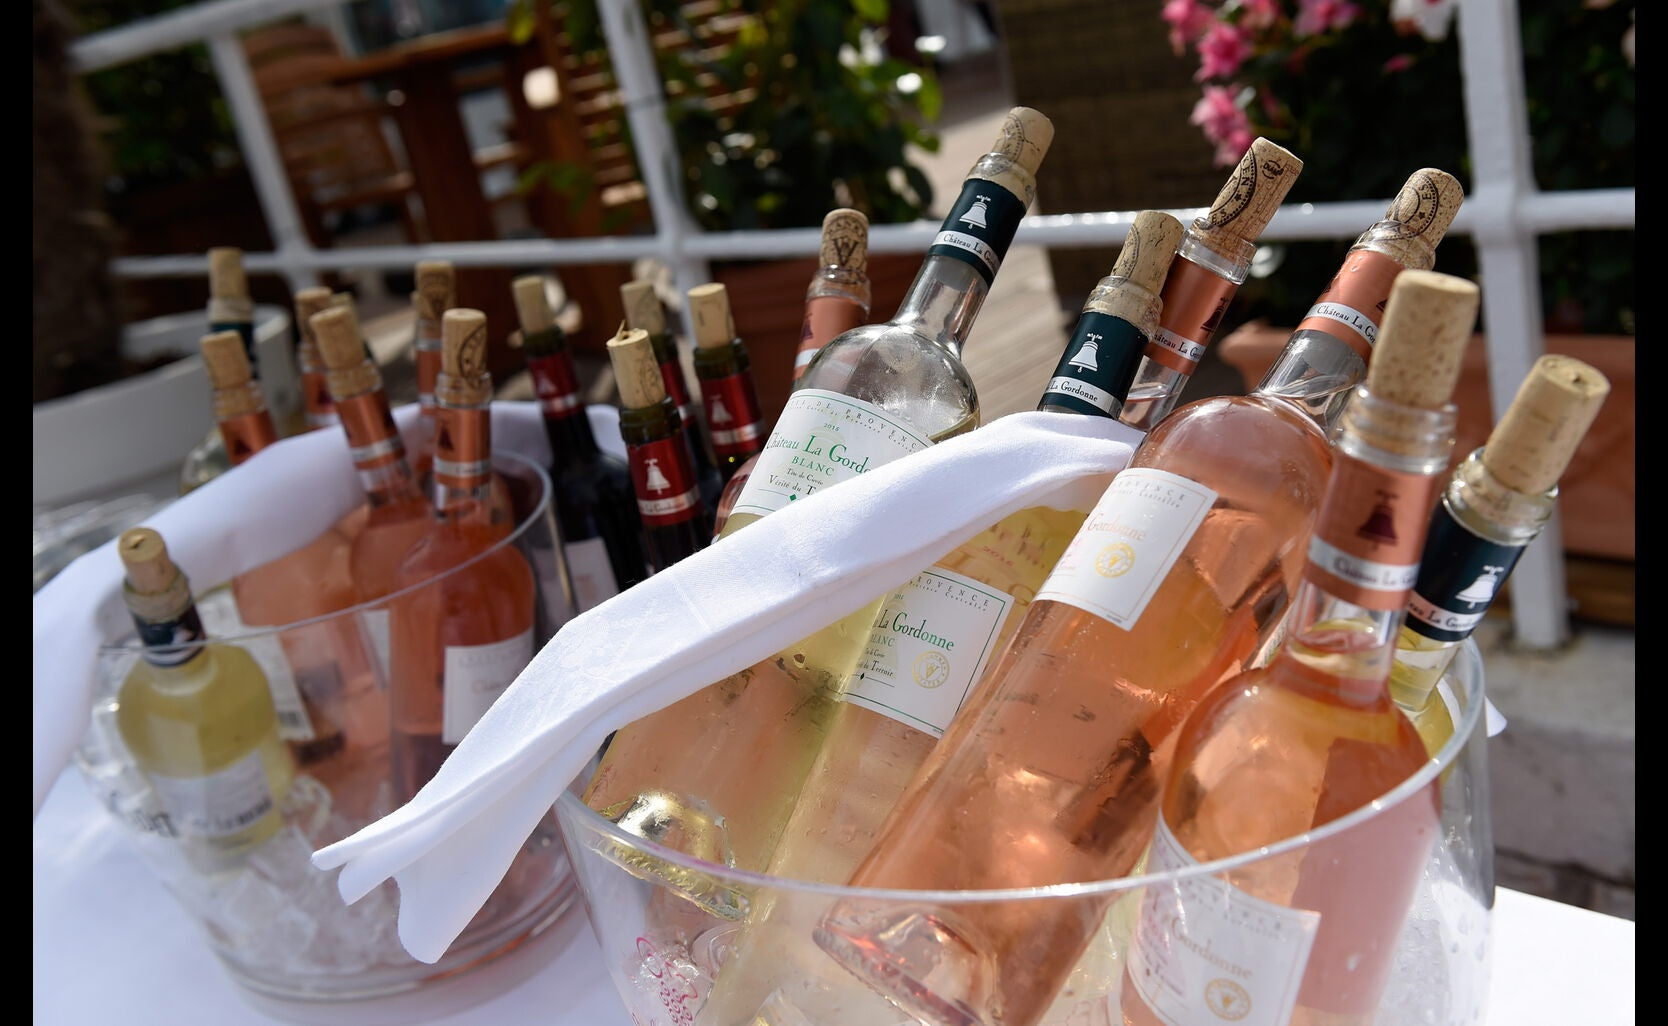 Bottles in display at the Locarno Film Festival Reception